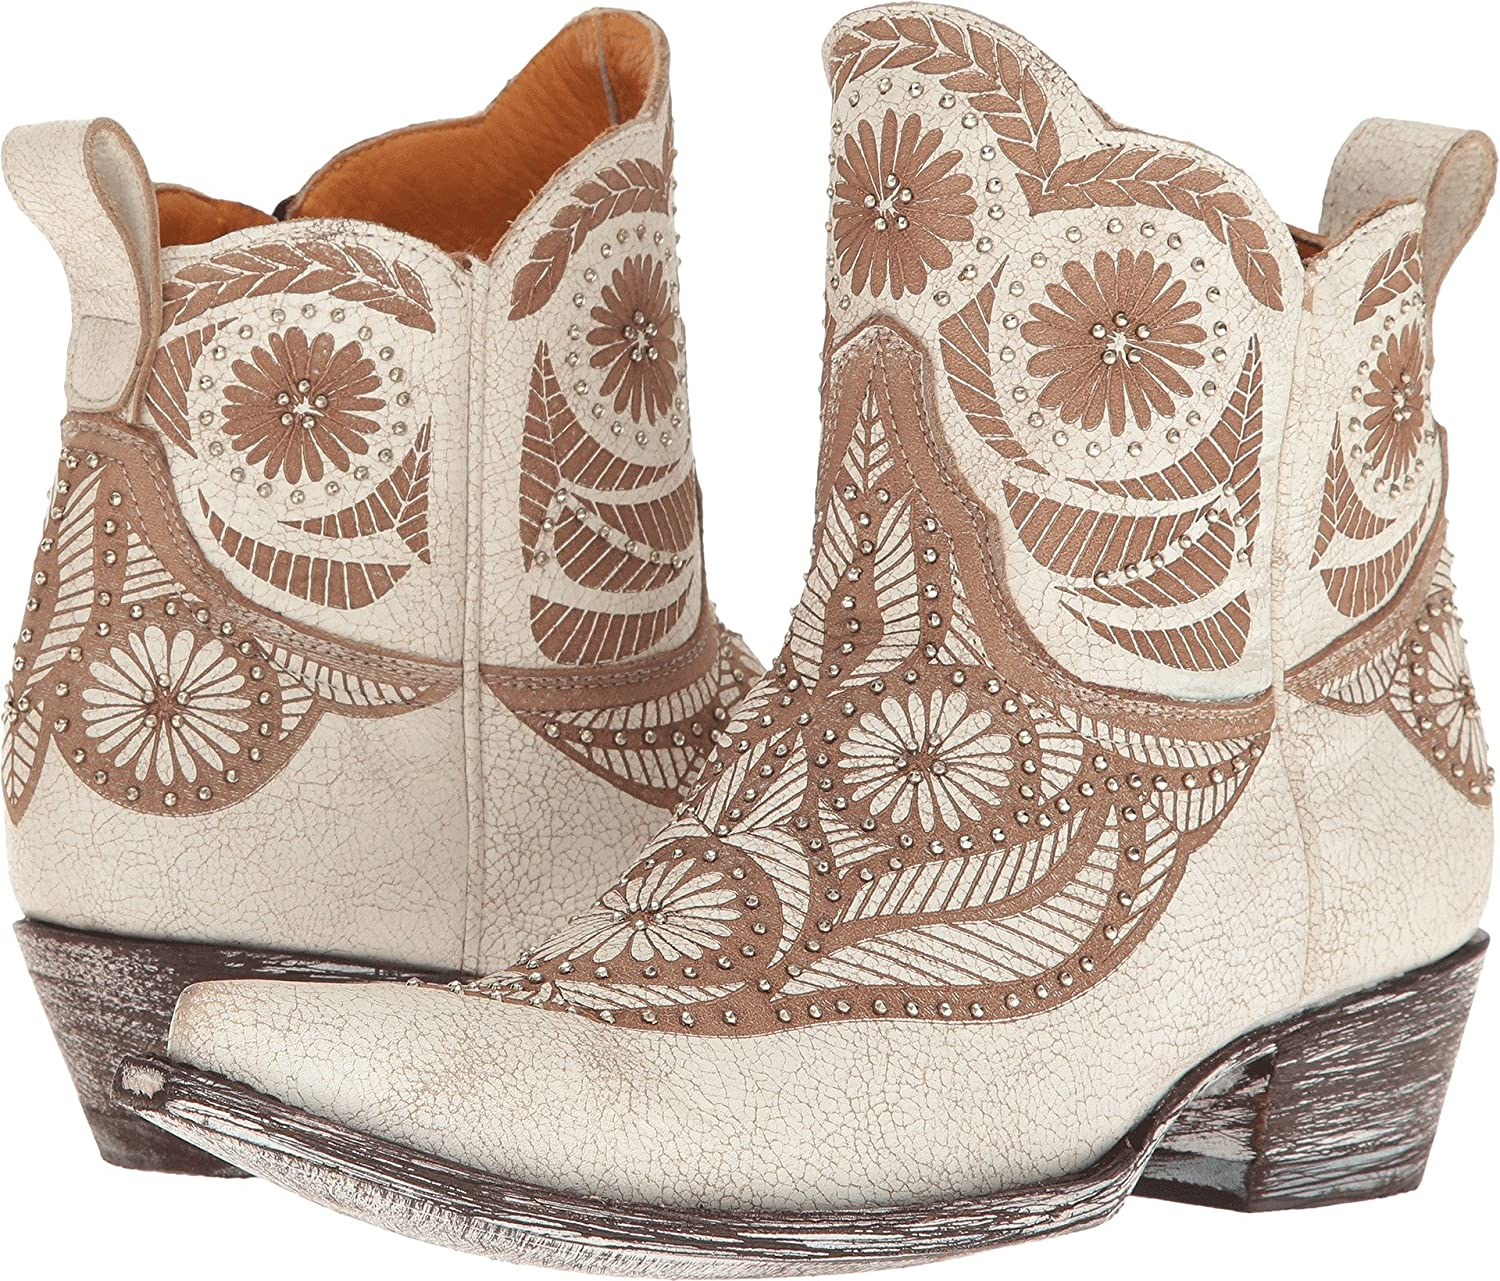 Old Gringo Womens Valentine Dion B06XD5XPBT 8 B(M) US|Crackled Taupe